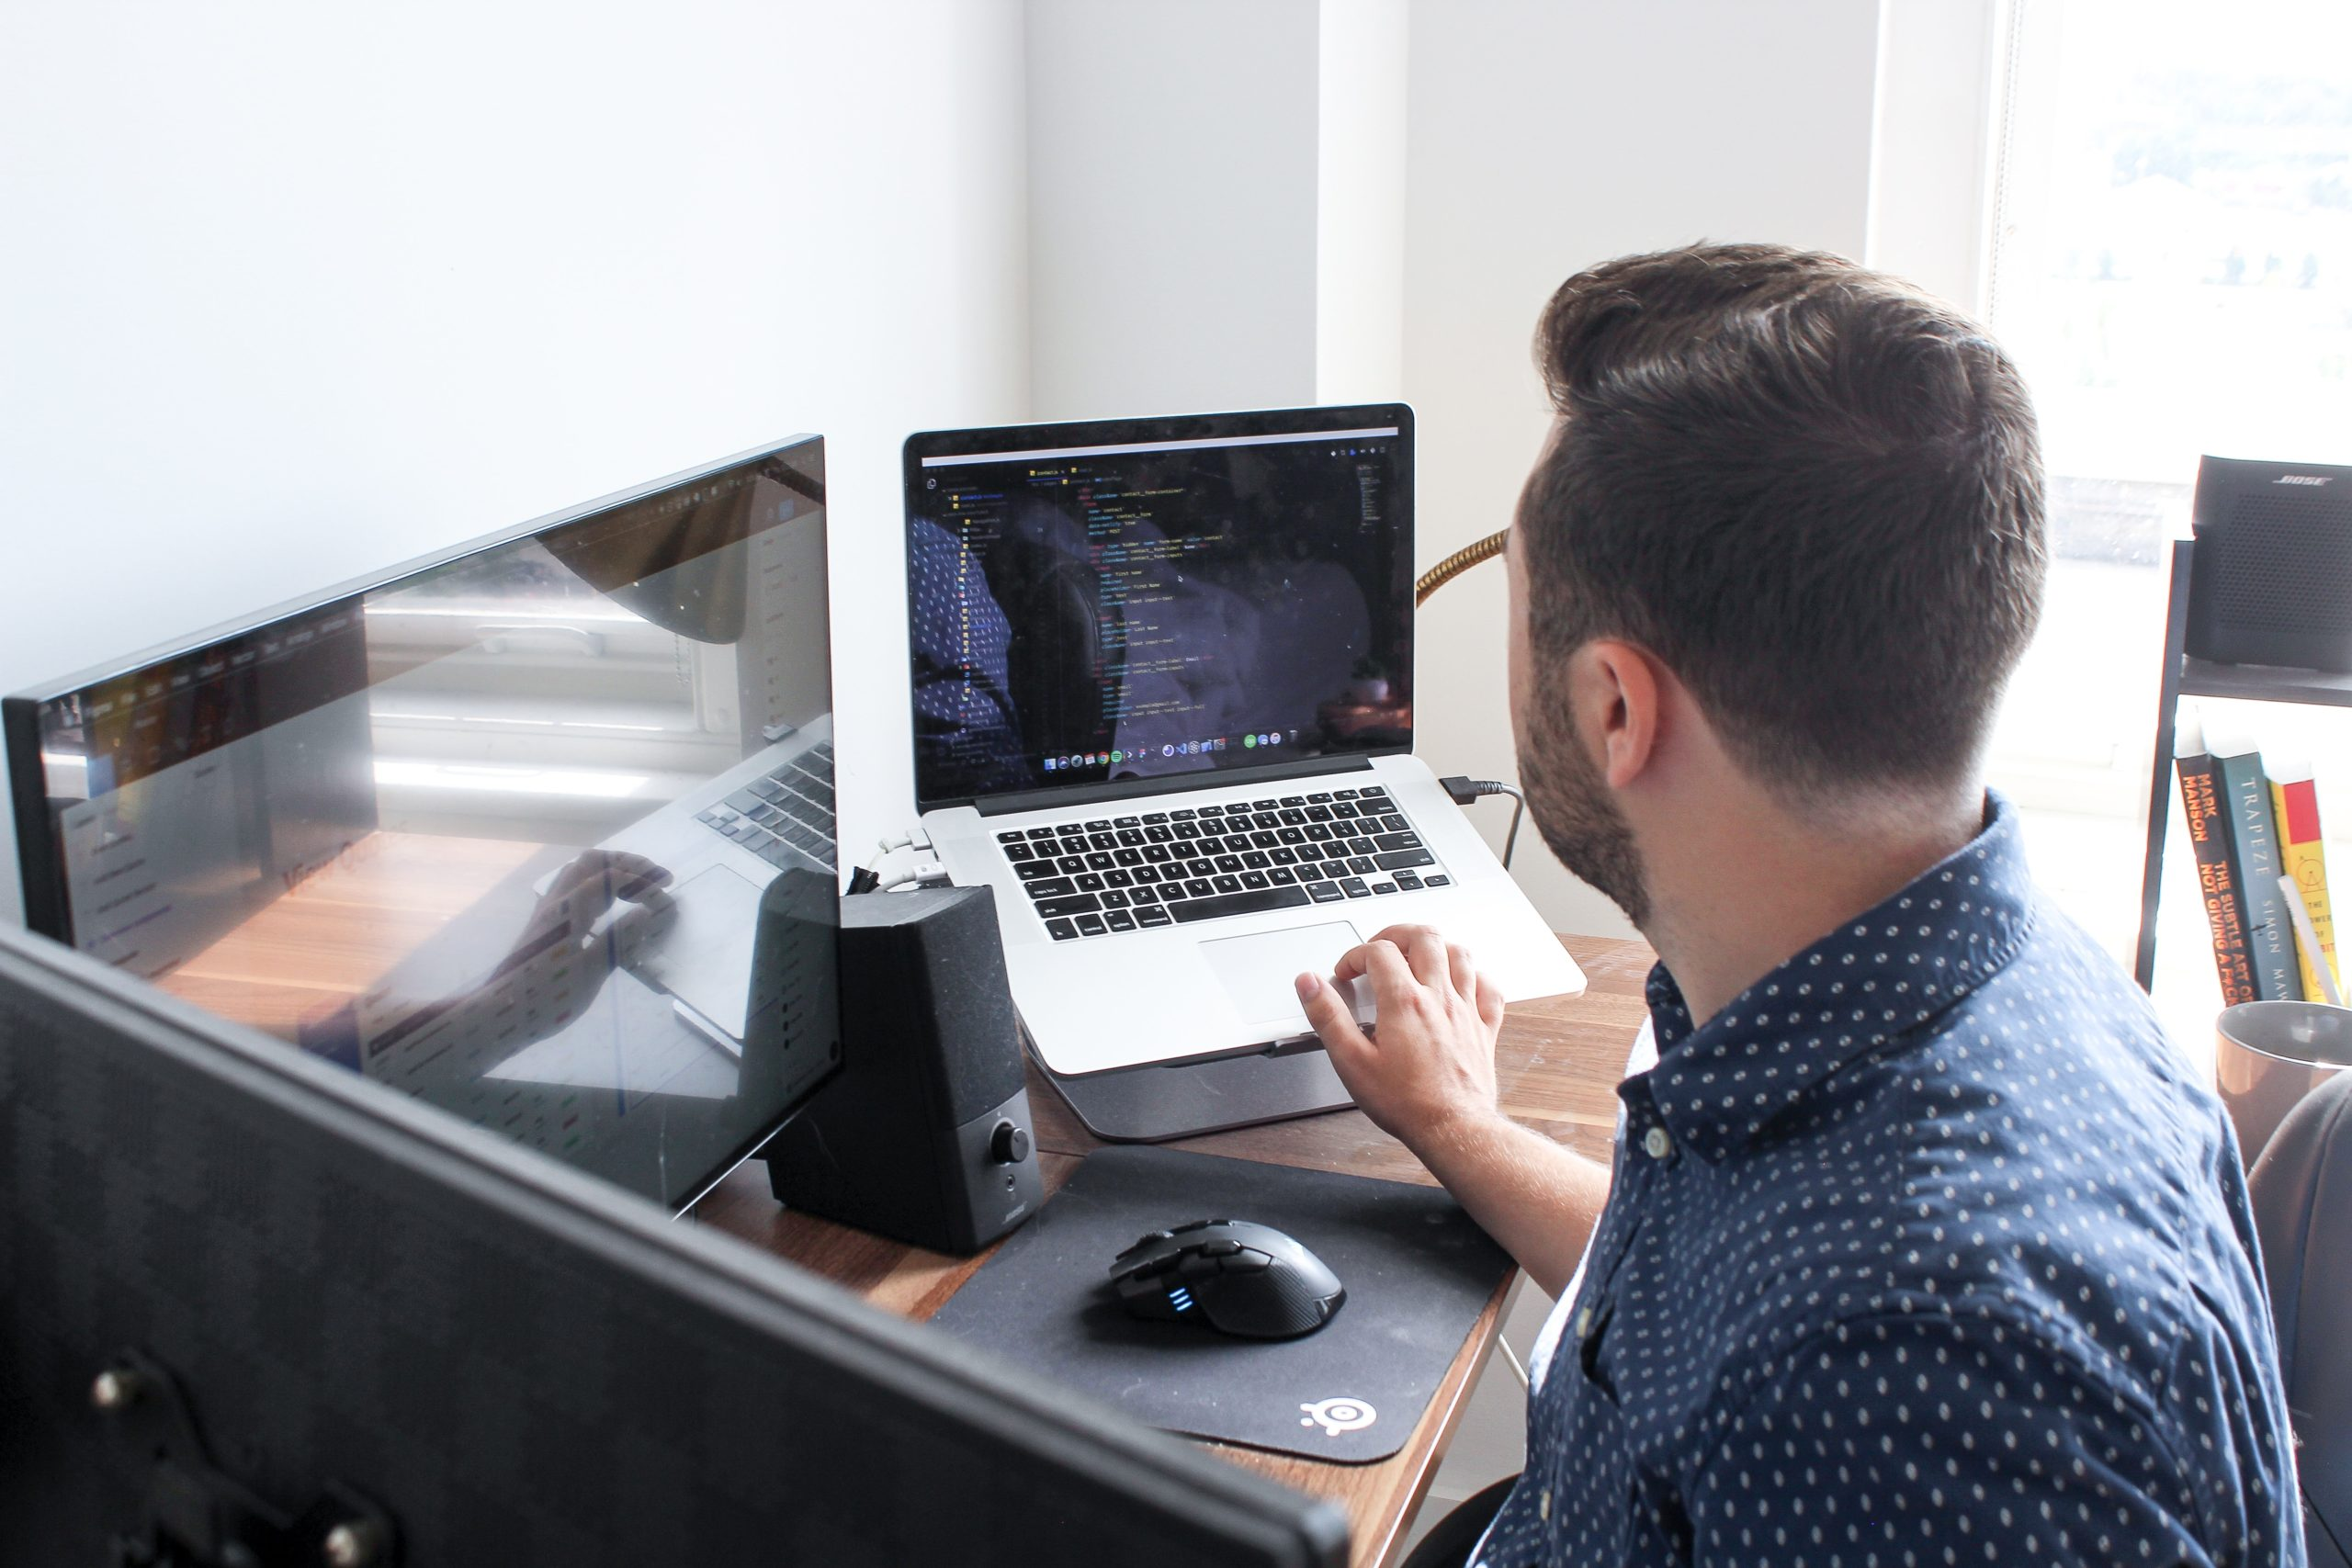 Man sitting in front of a laptop and desktop